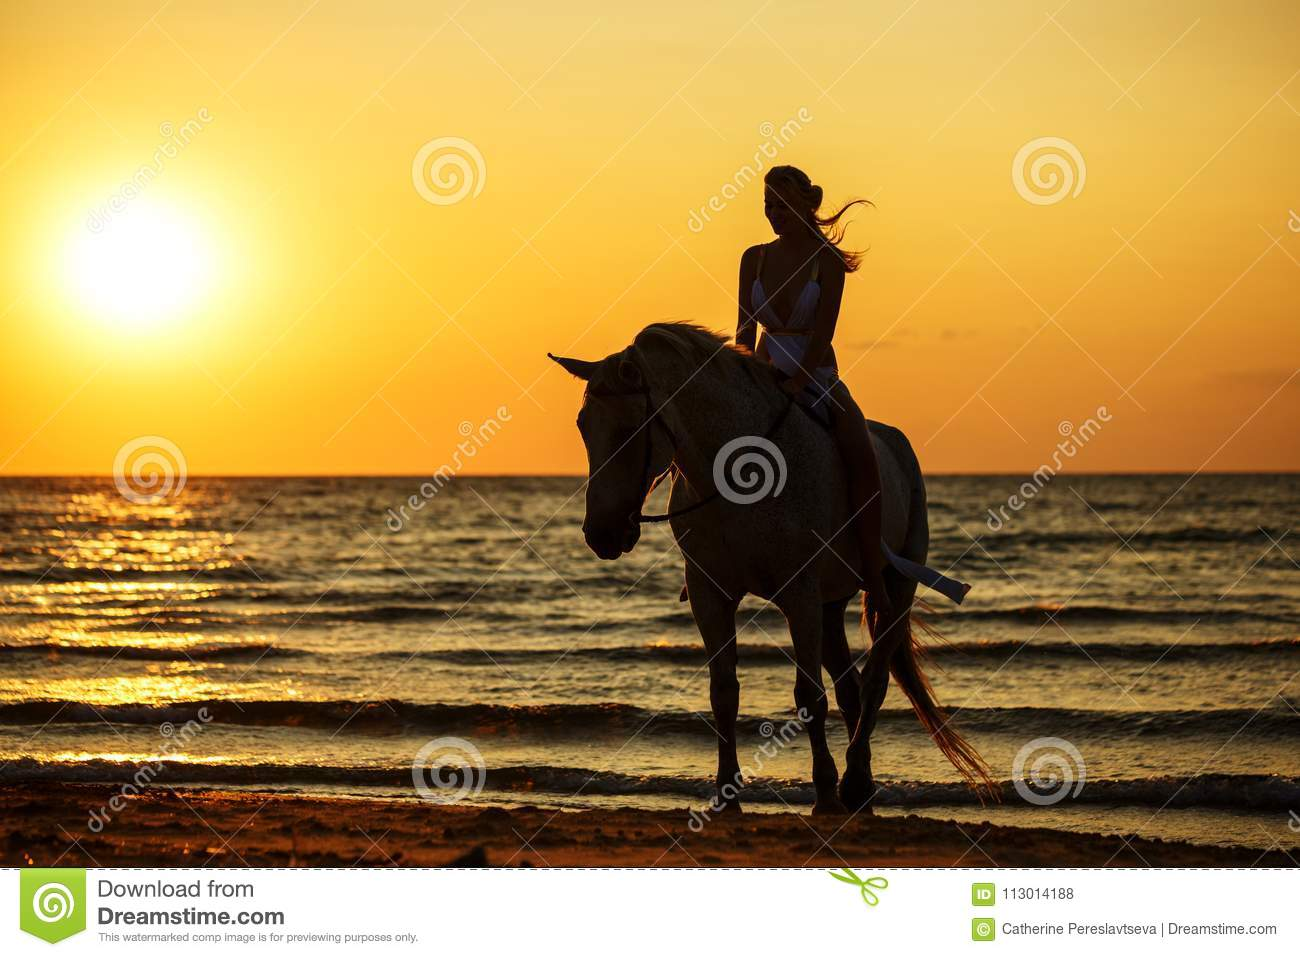 Female silhouette on a horse at sunset by the sea